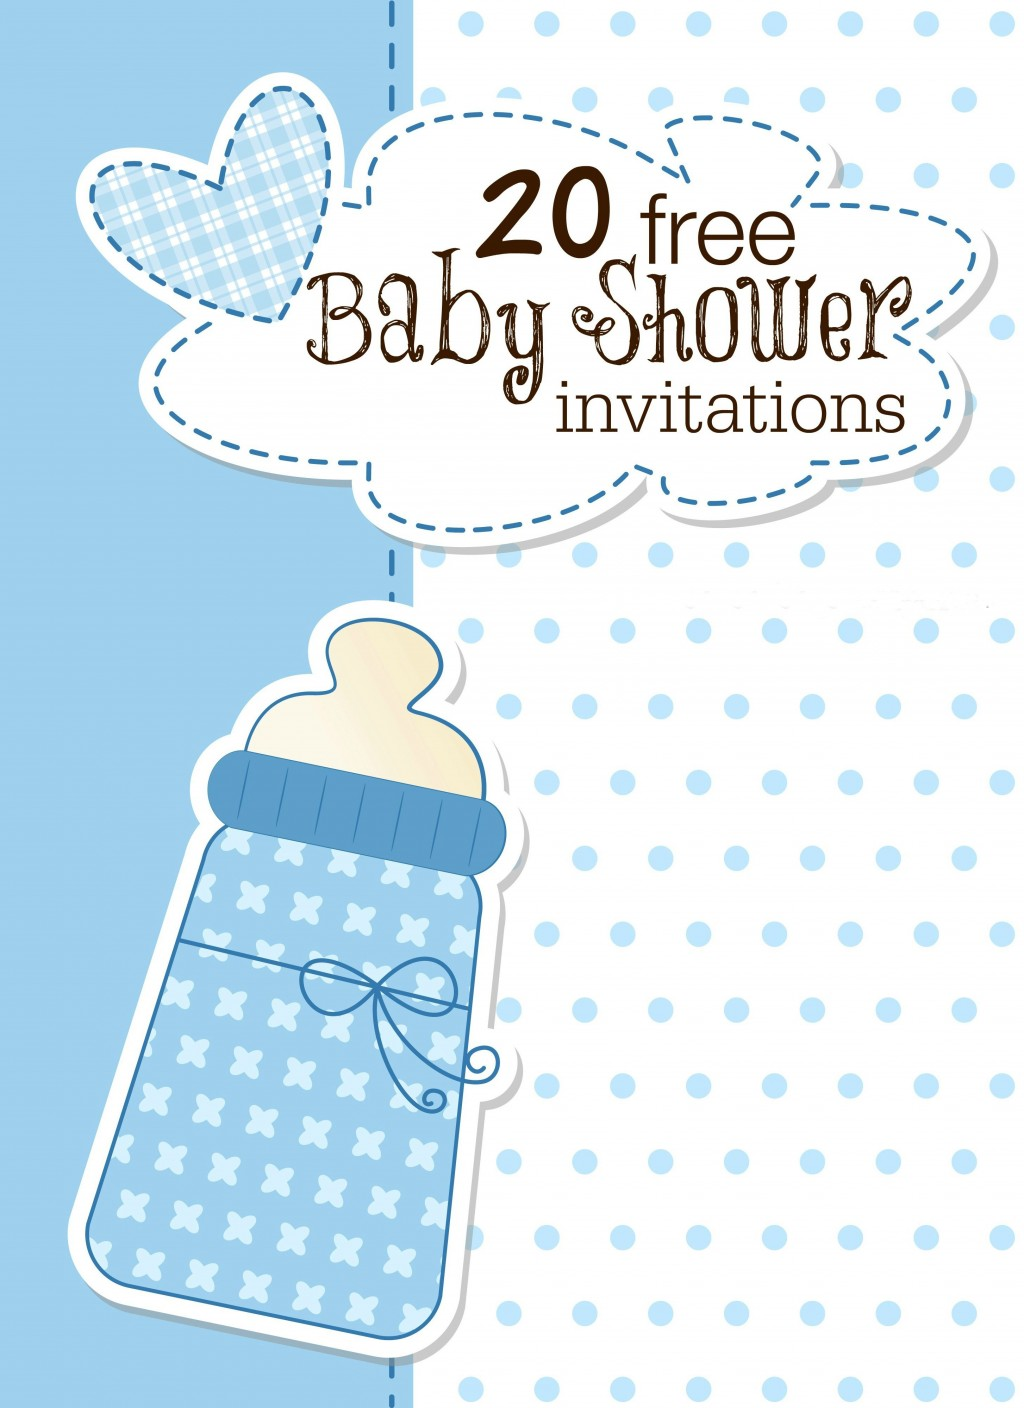 008 Incredible Free Baby Shower Invitation Template For Boy Highest Clarity Large